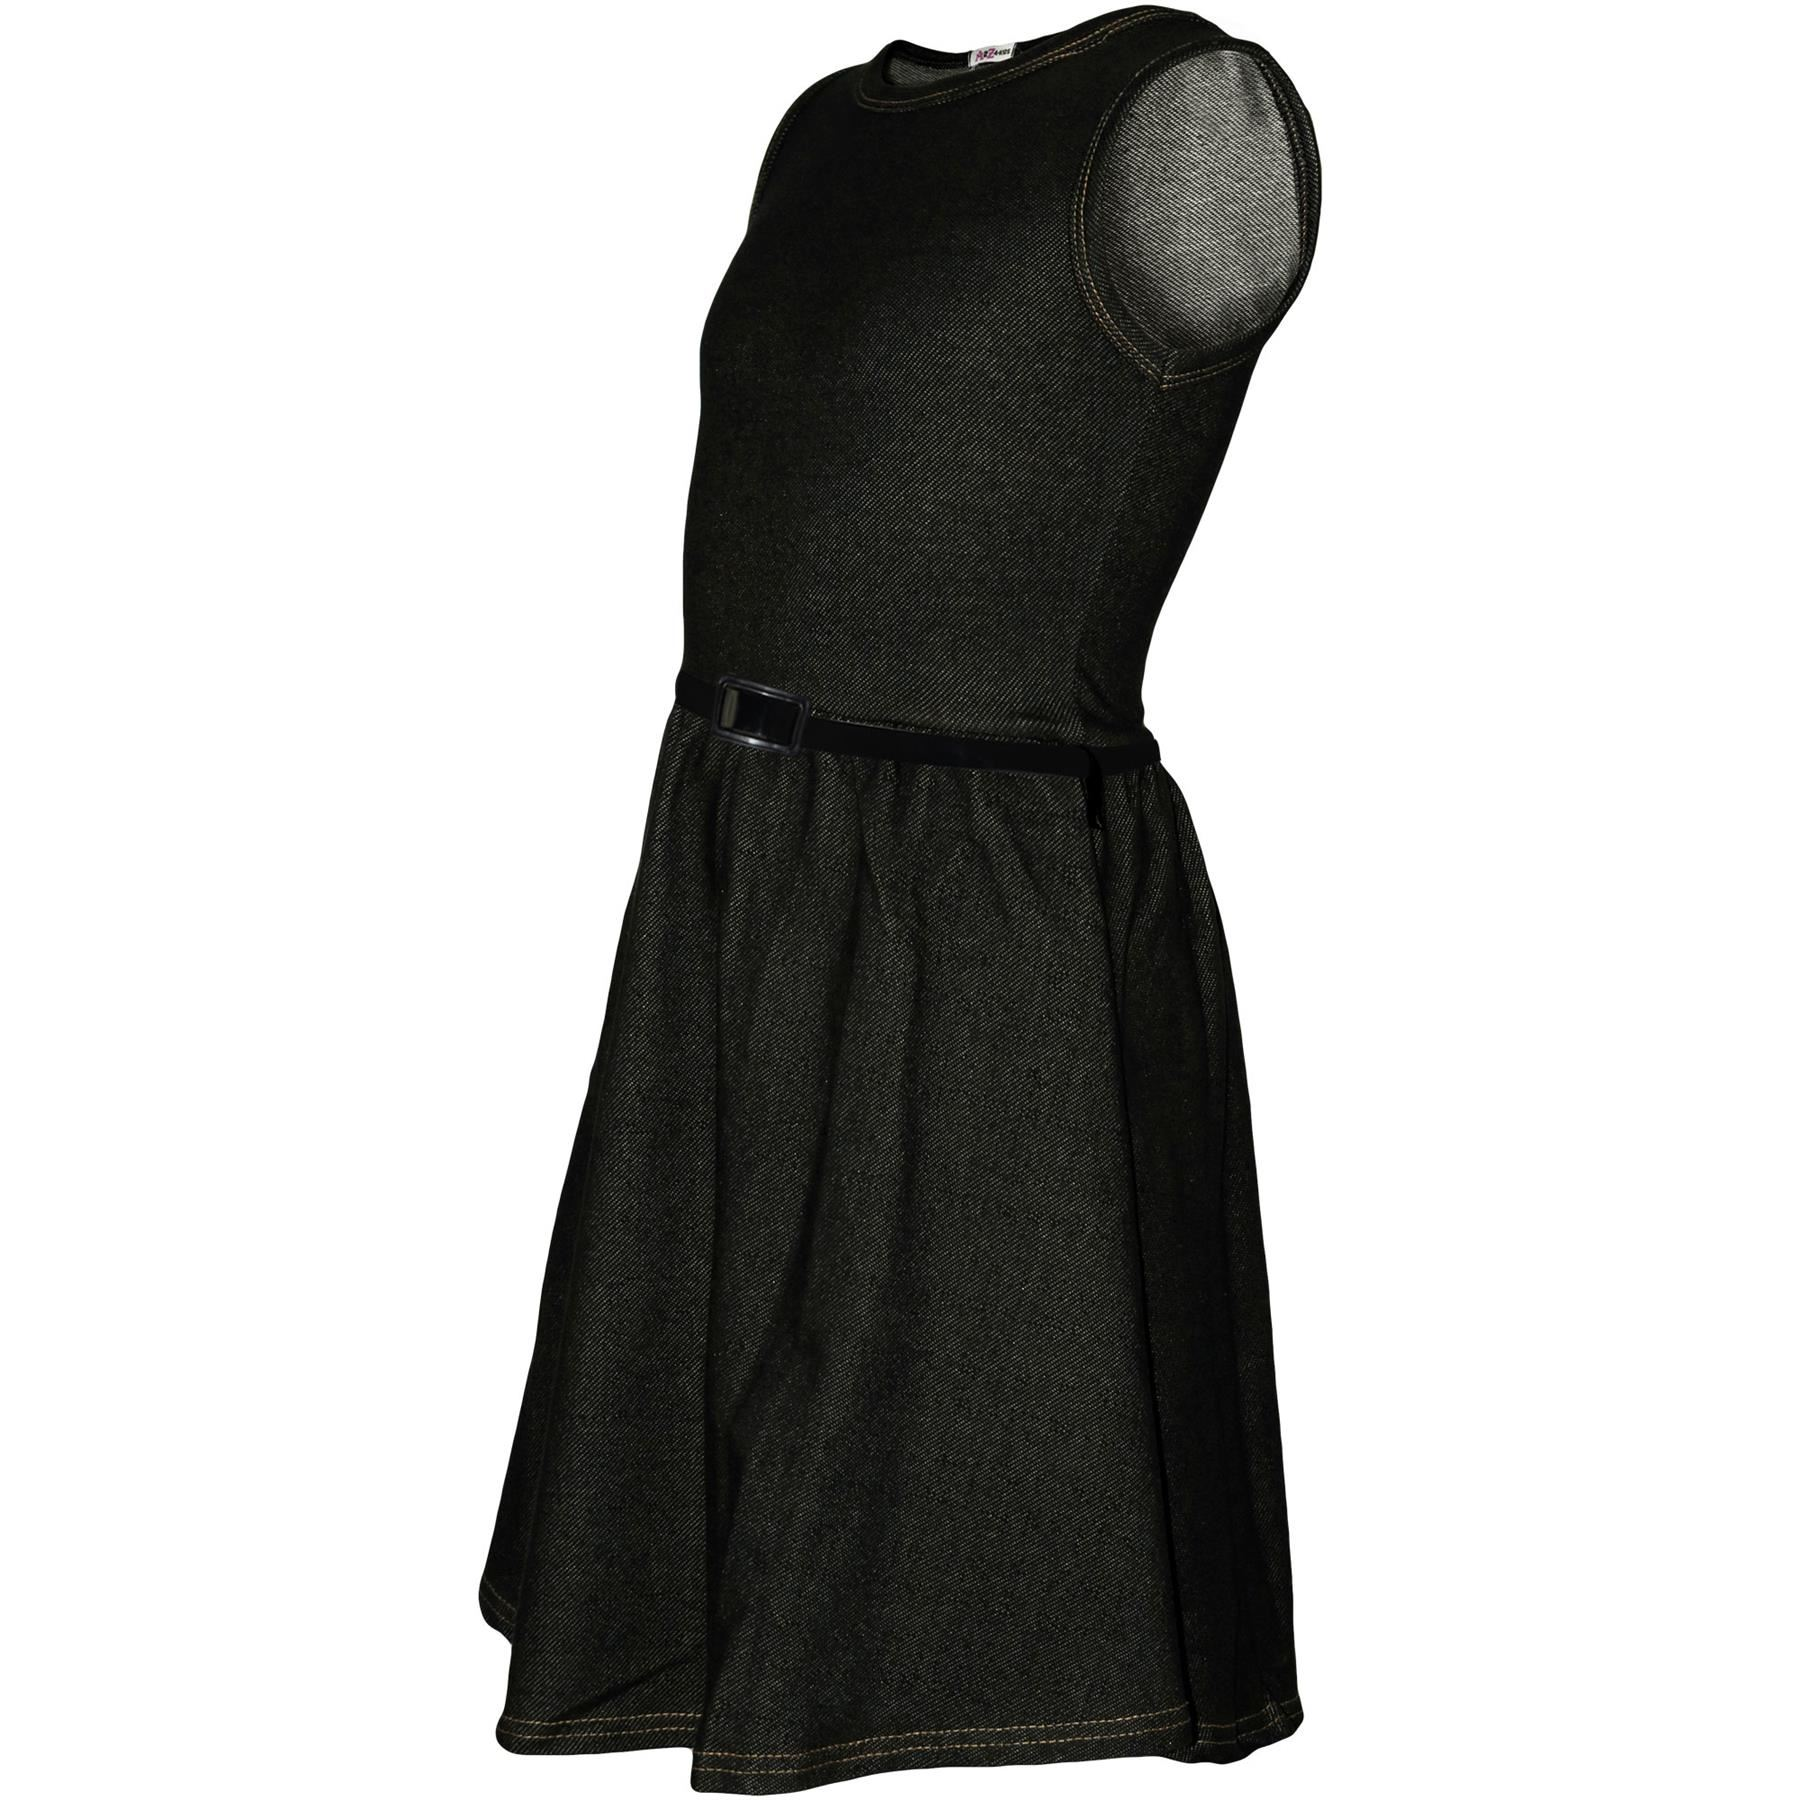 Girls-Skater-Dress-Kids-Party-Dresses-With-Free-Belt-Age-7-8-9-10-11-12-13-Years thumbnail 12